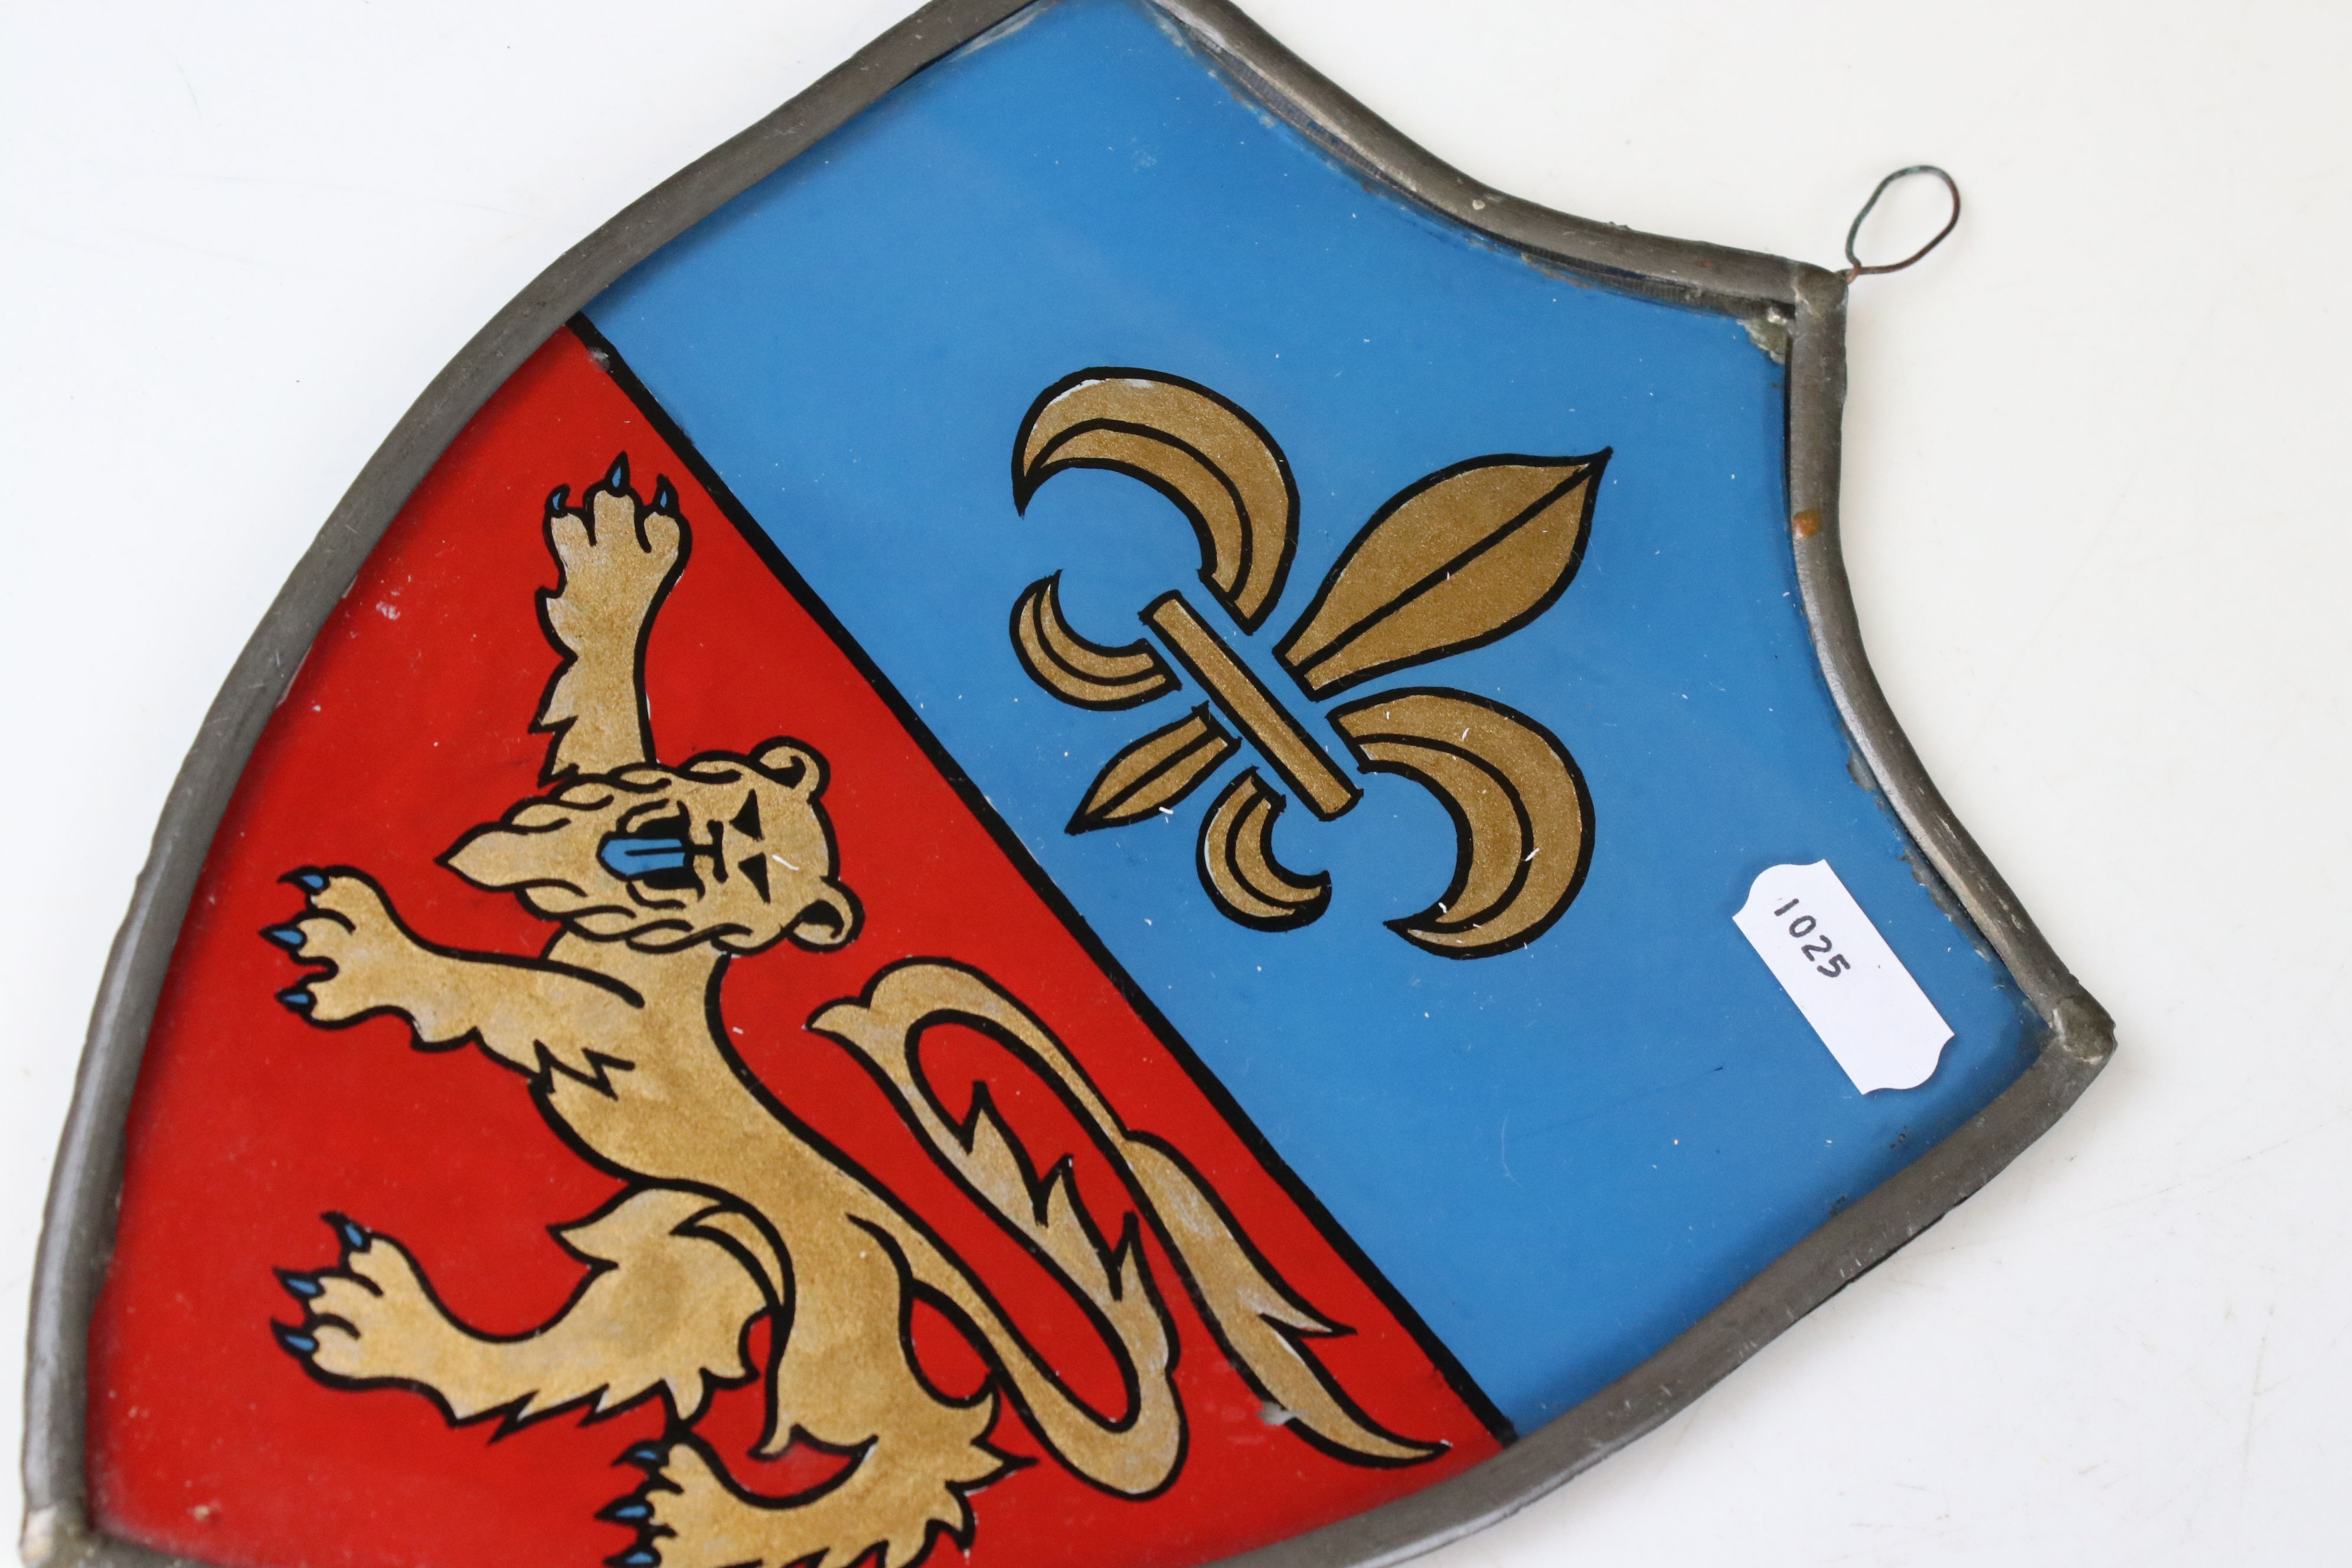 Pair of Heraldic Stained Glass Panels reverse painted with Fleur De Lys and Lions, contained in - Image 2 of 4